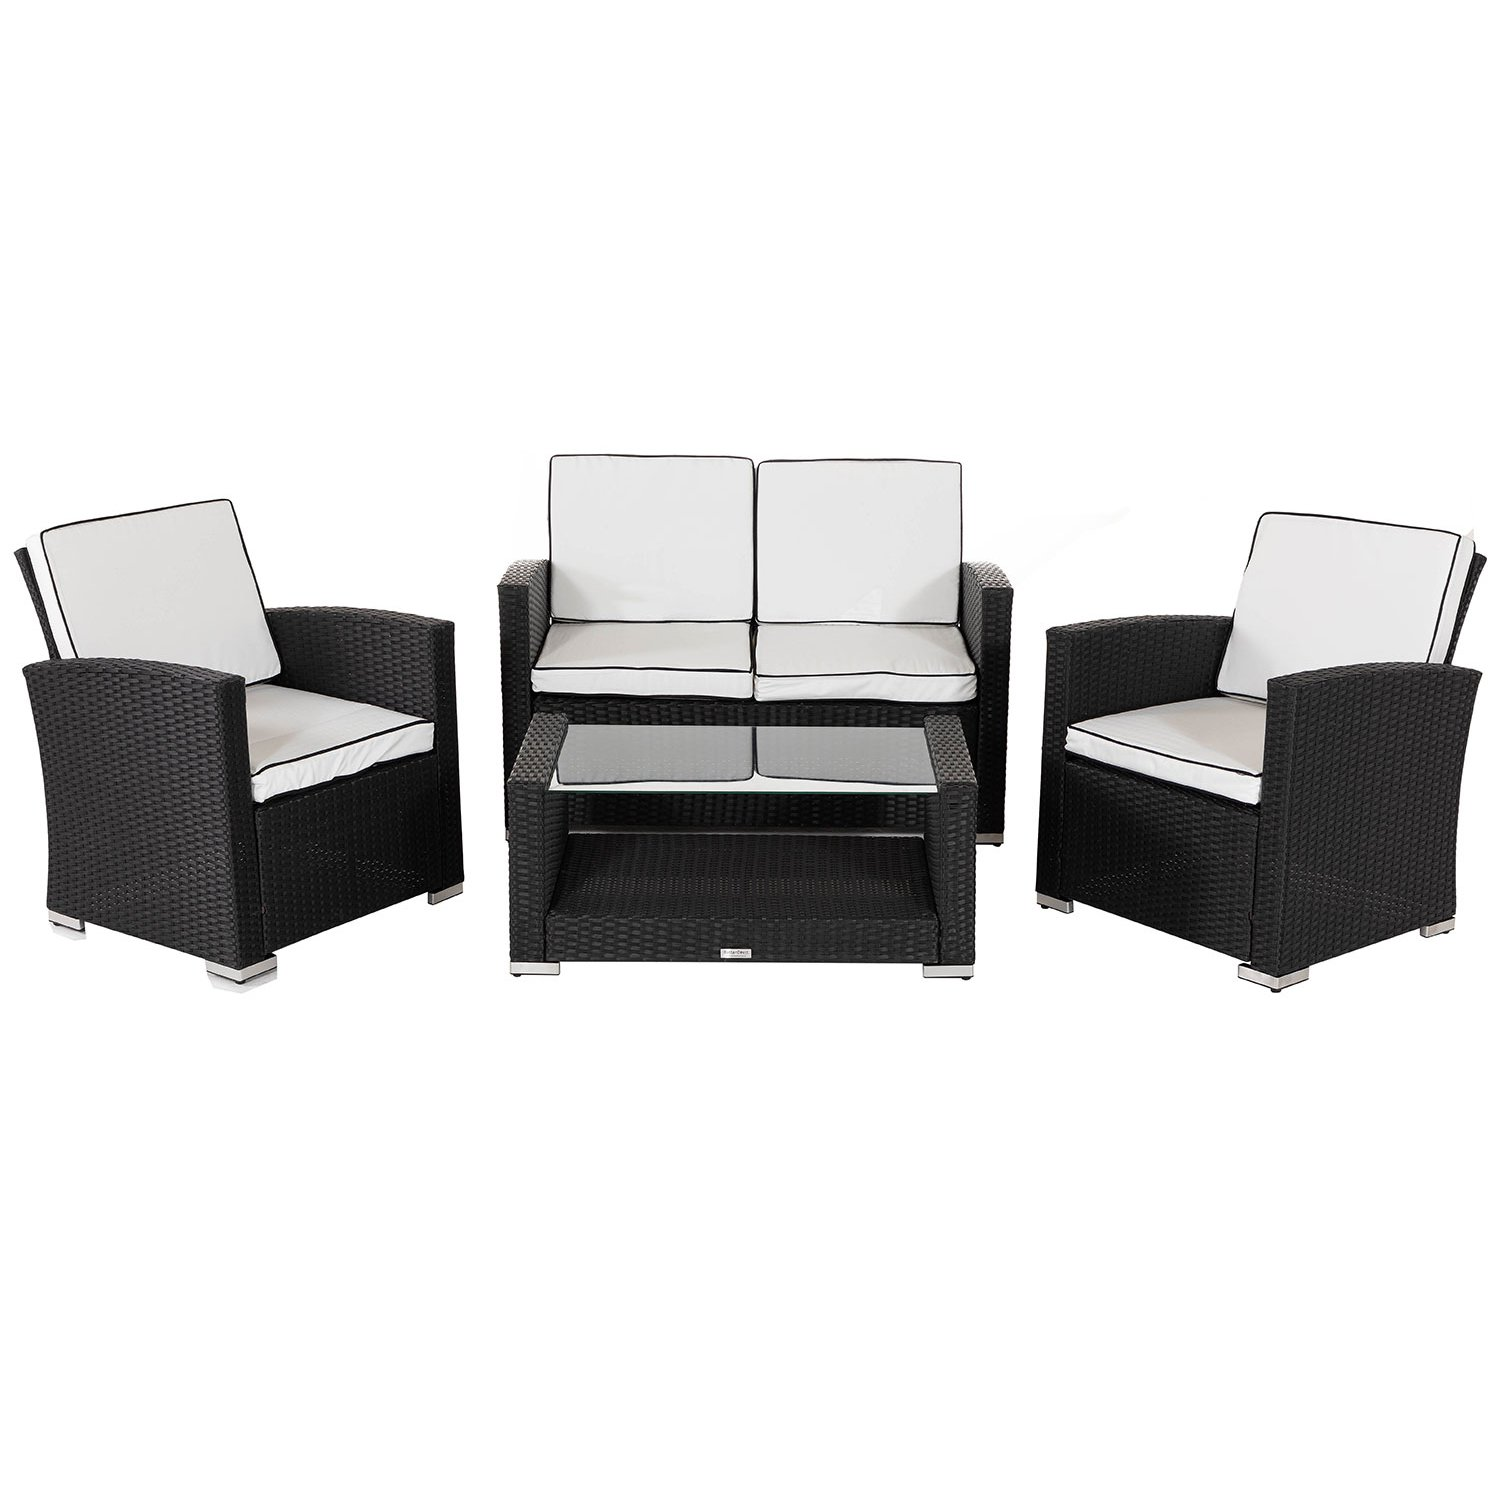 image-Marbella Rattan Garden Sofa Set in Black and Vanilla